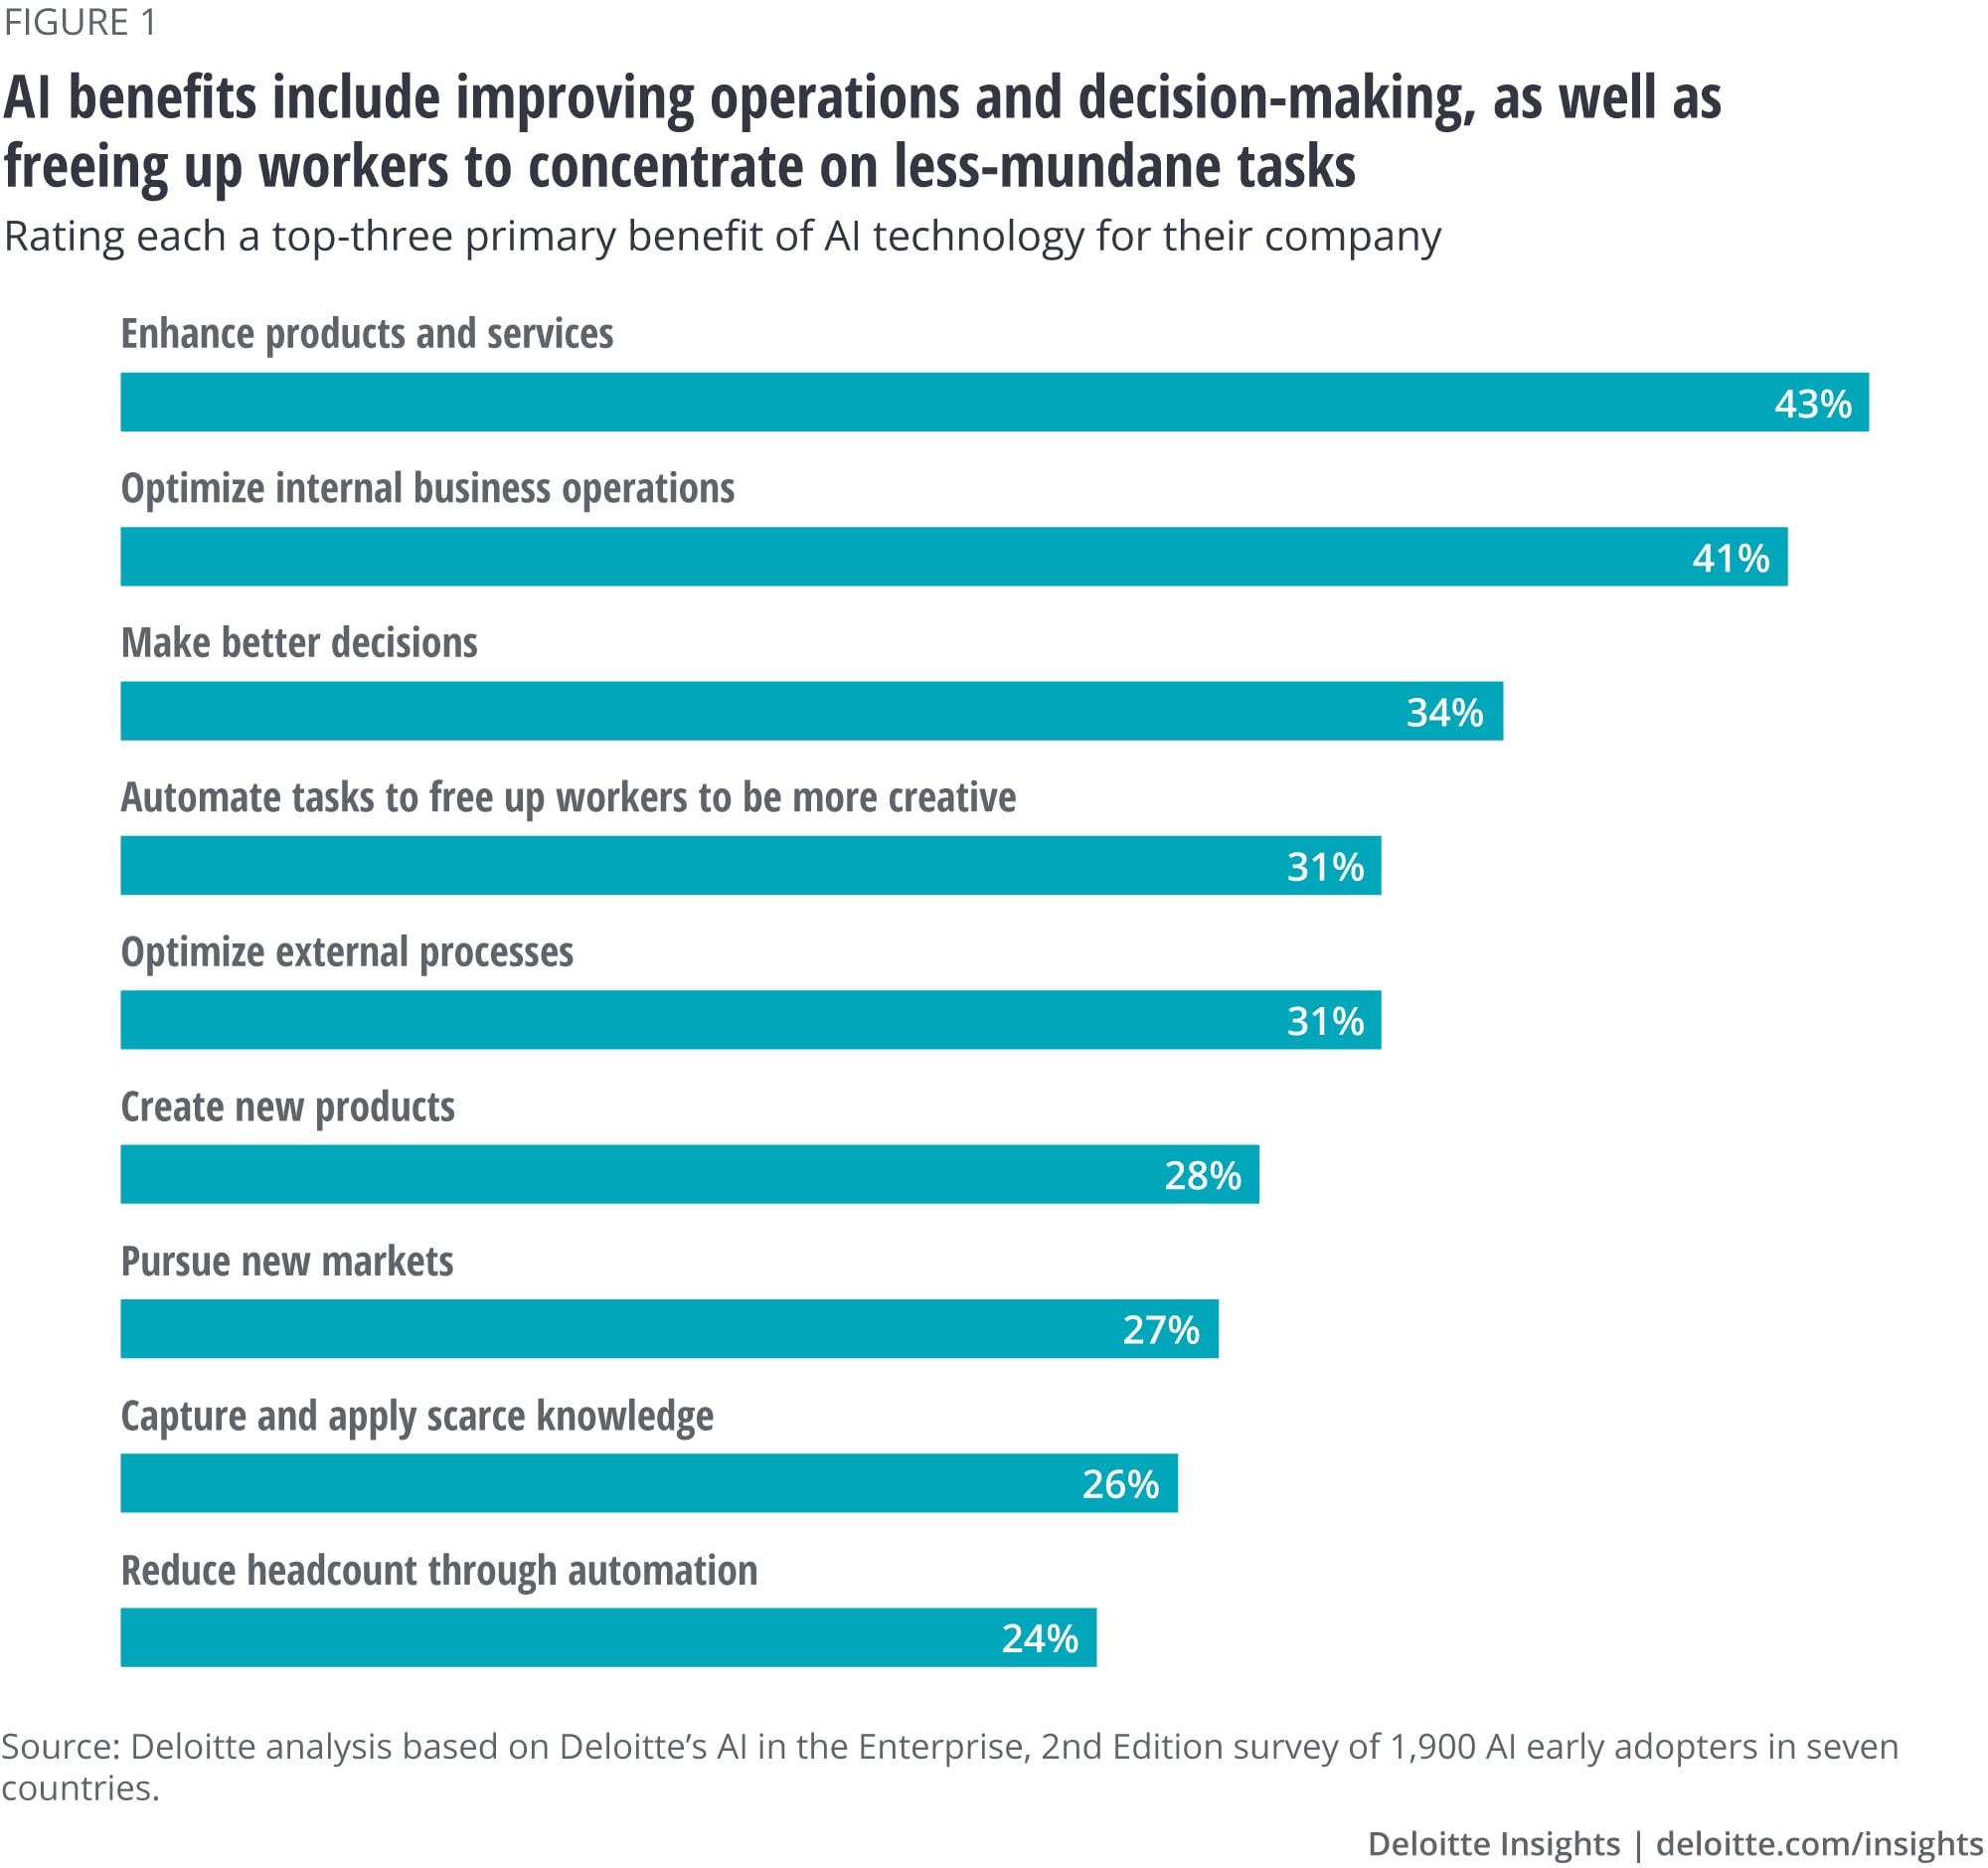 AI benefits include improving operations and decision-making, as well as freeing up workers to concentrate on less-mundane tasks